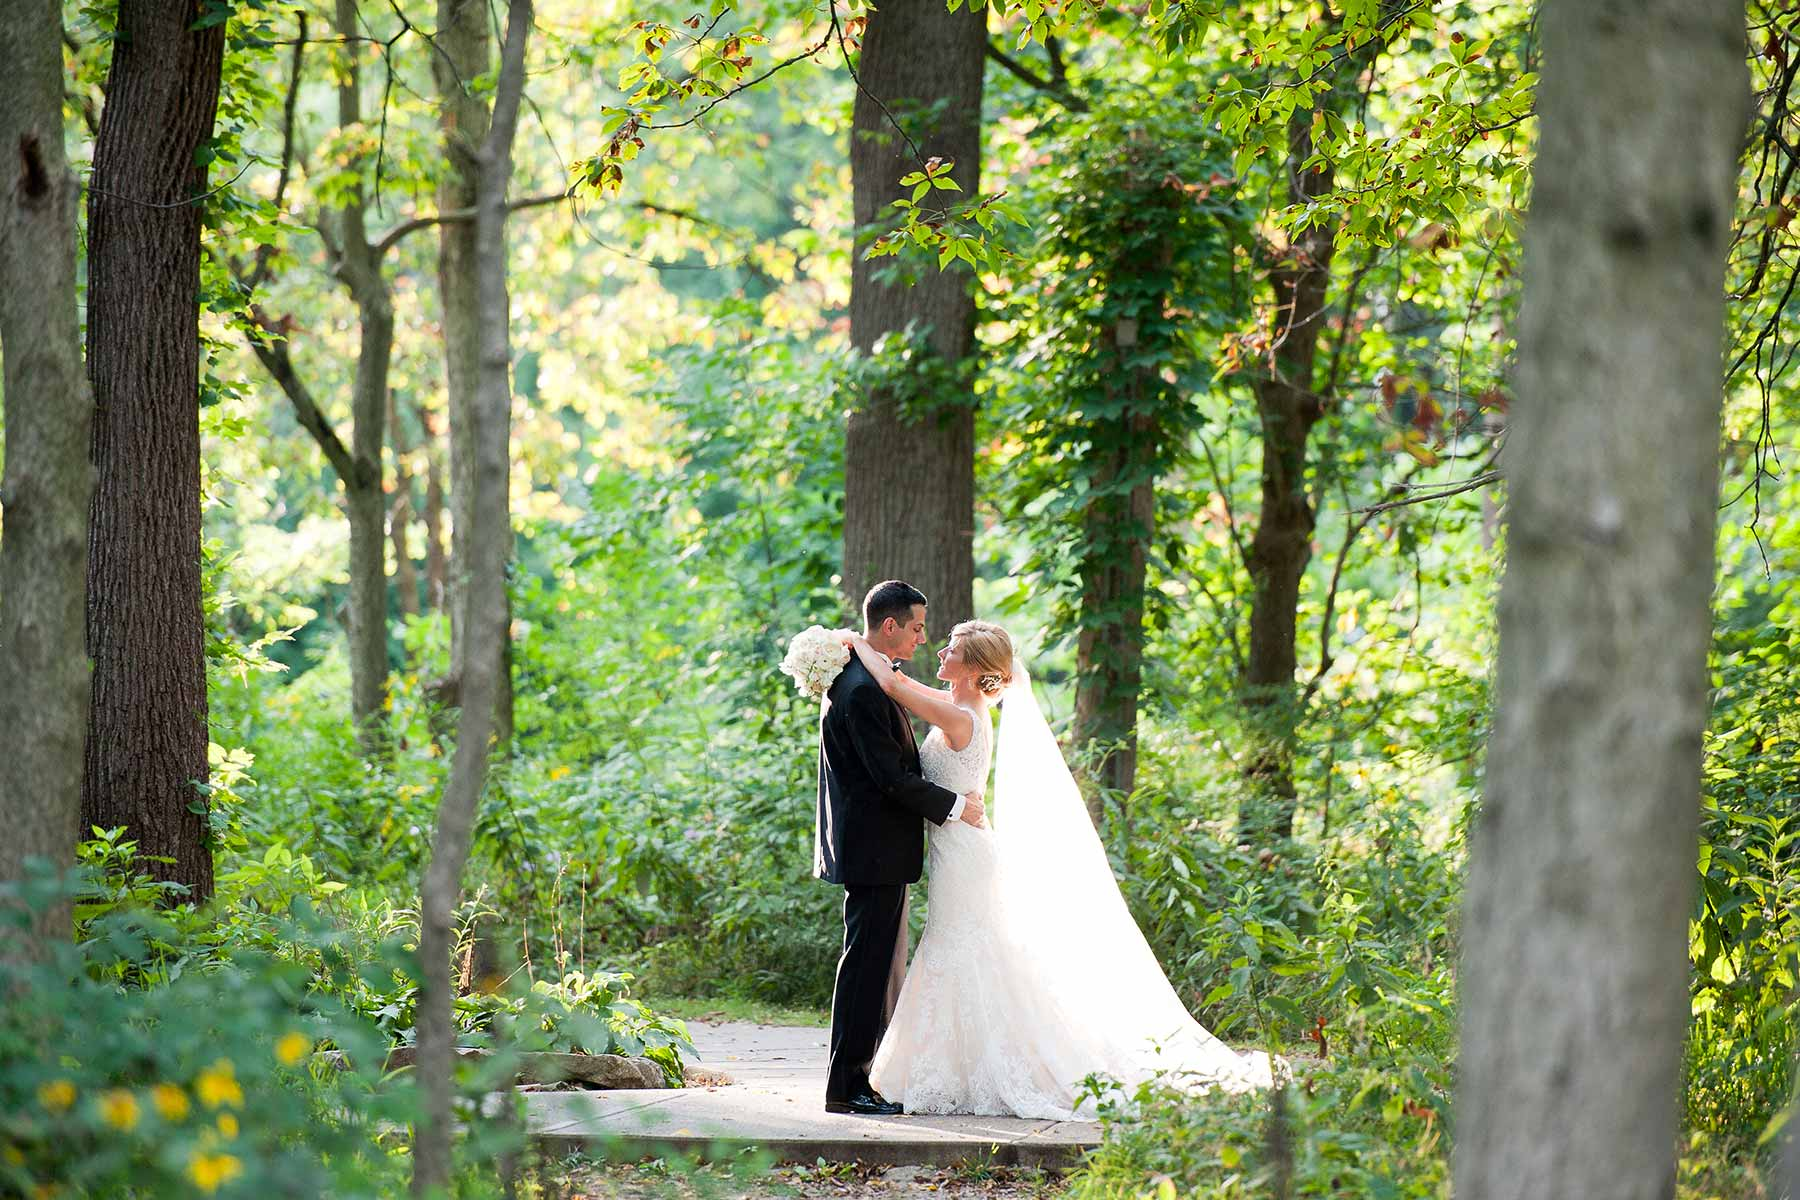 Creekside bride and groom in the woods